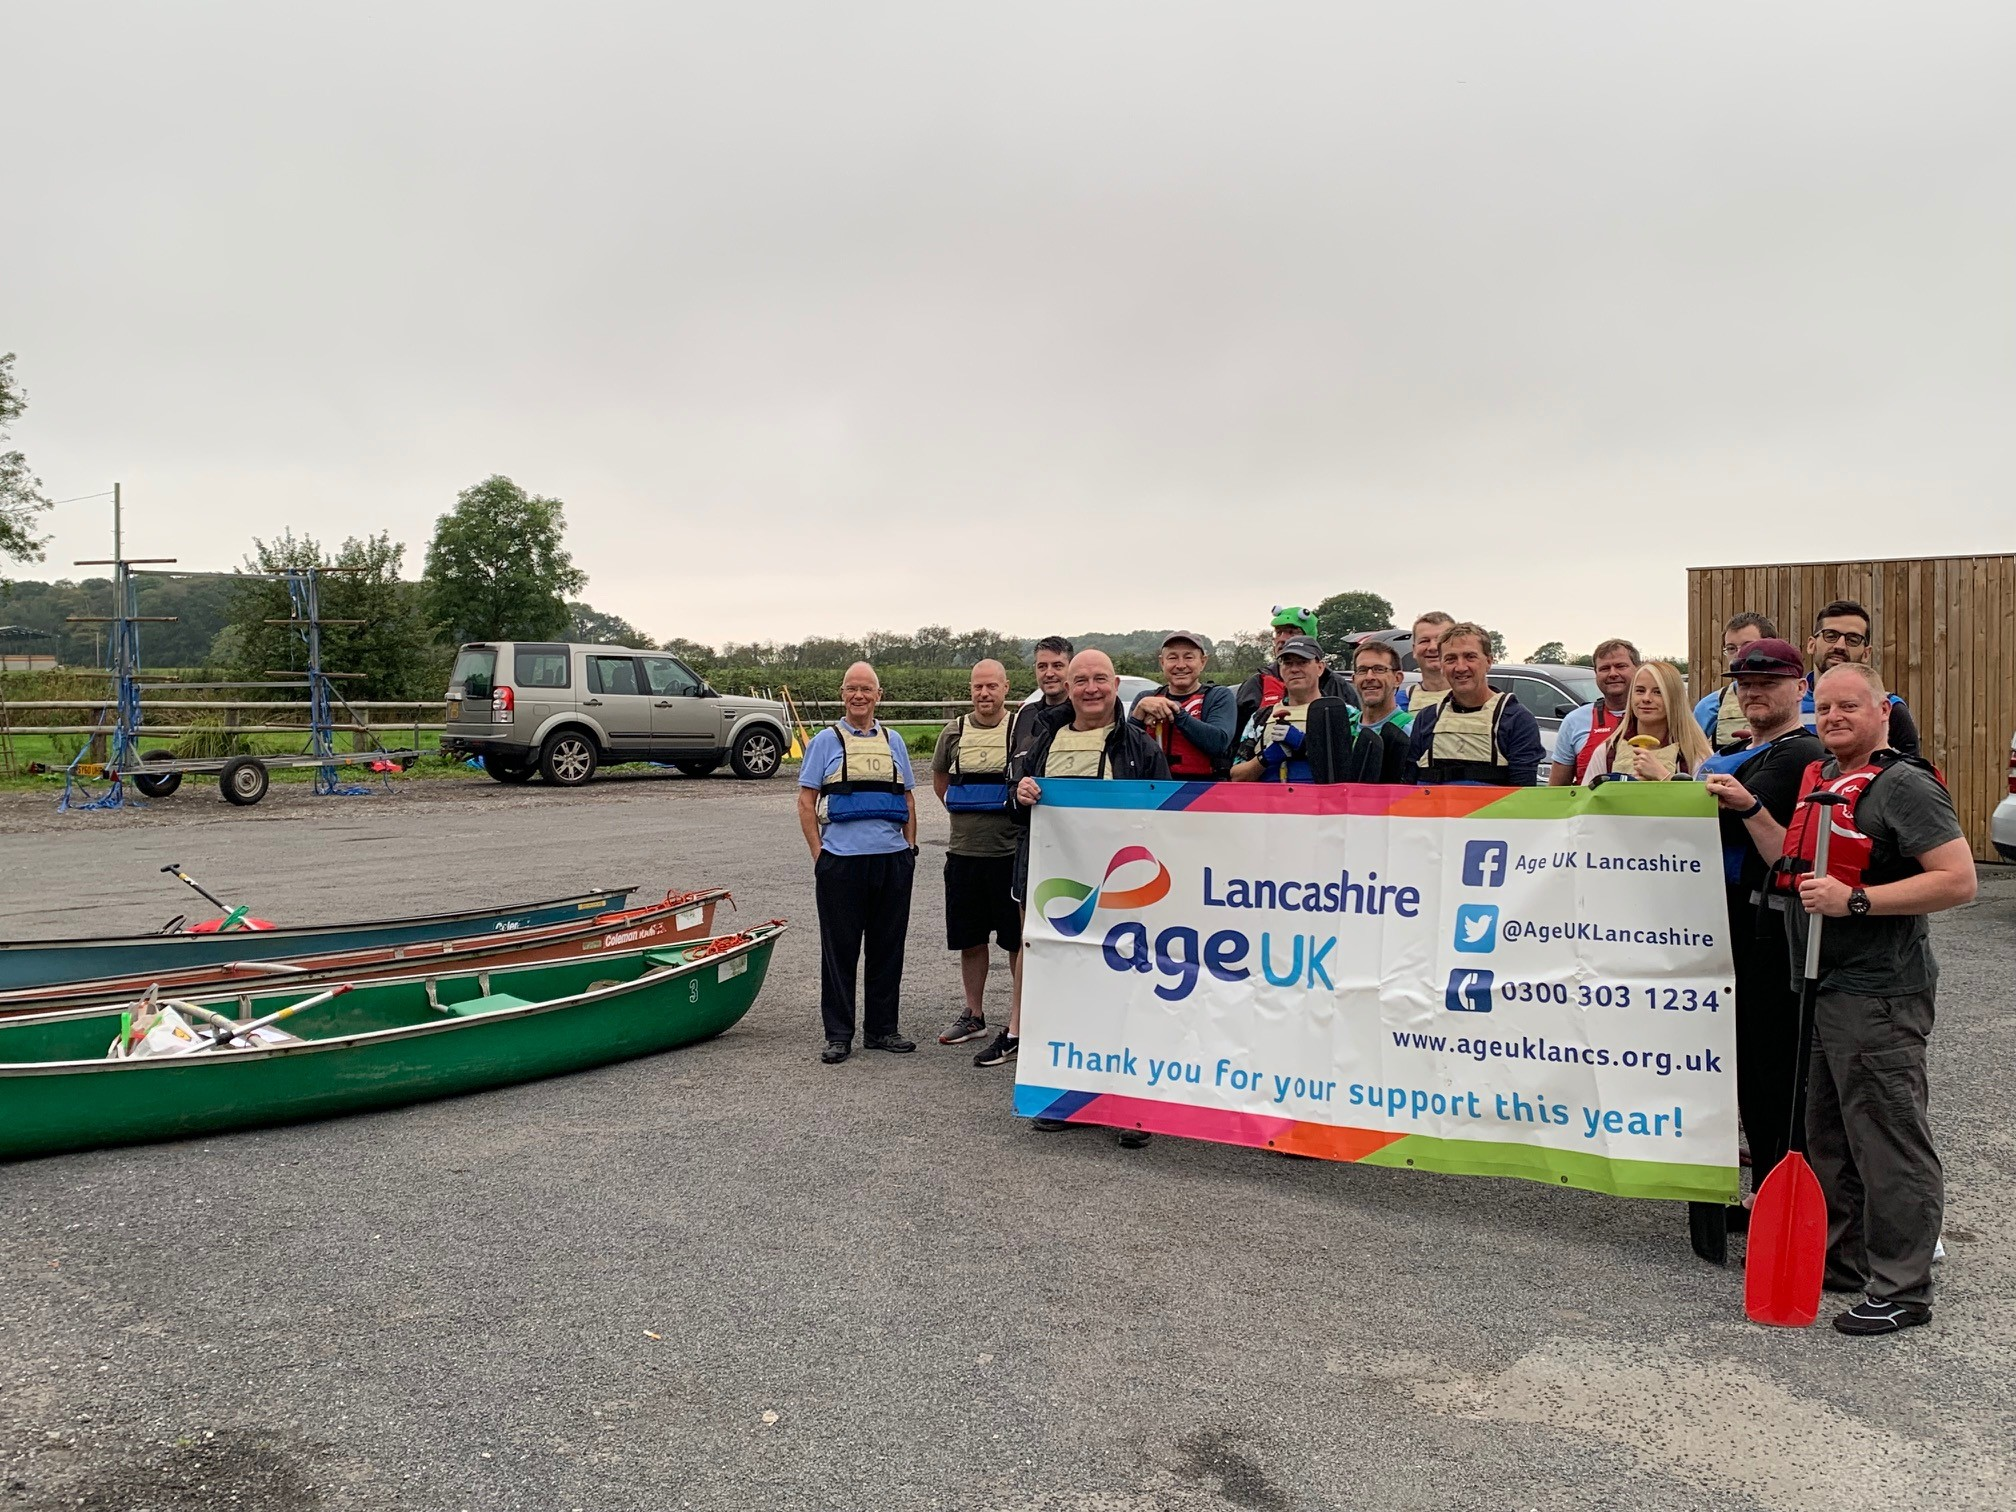 Canoeists take on 25 mile course to support older people